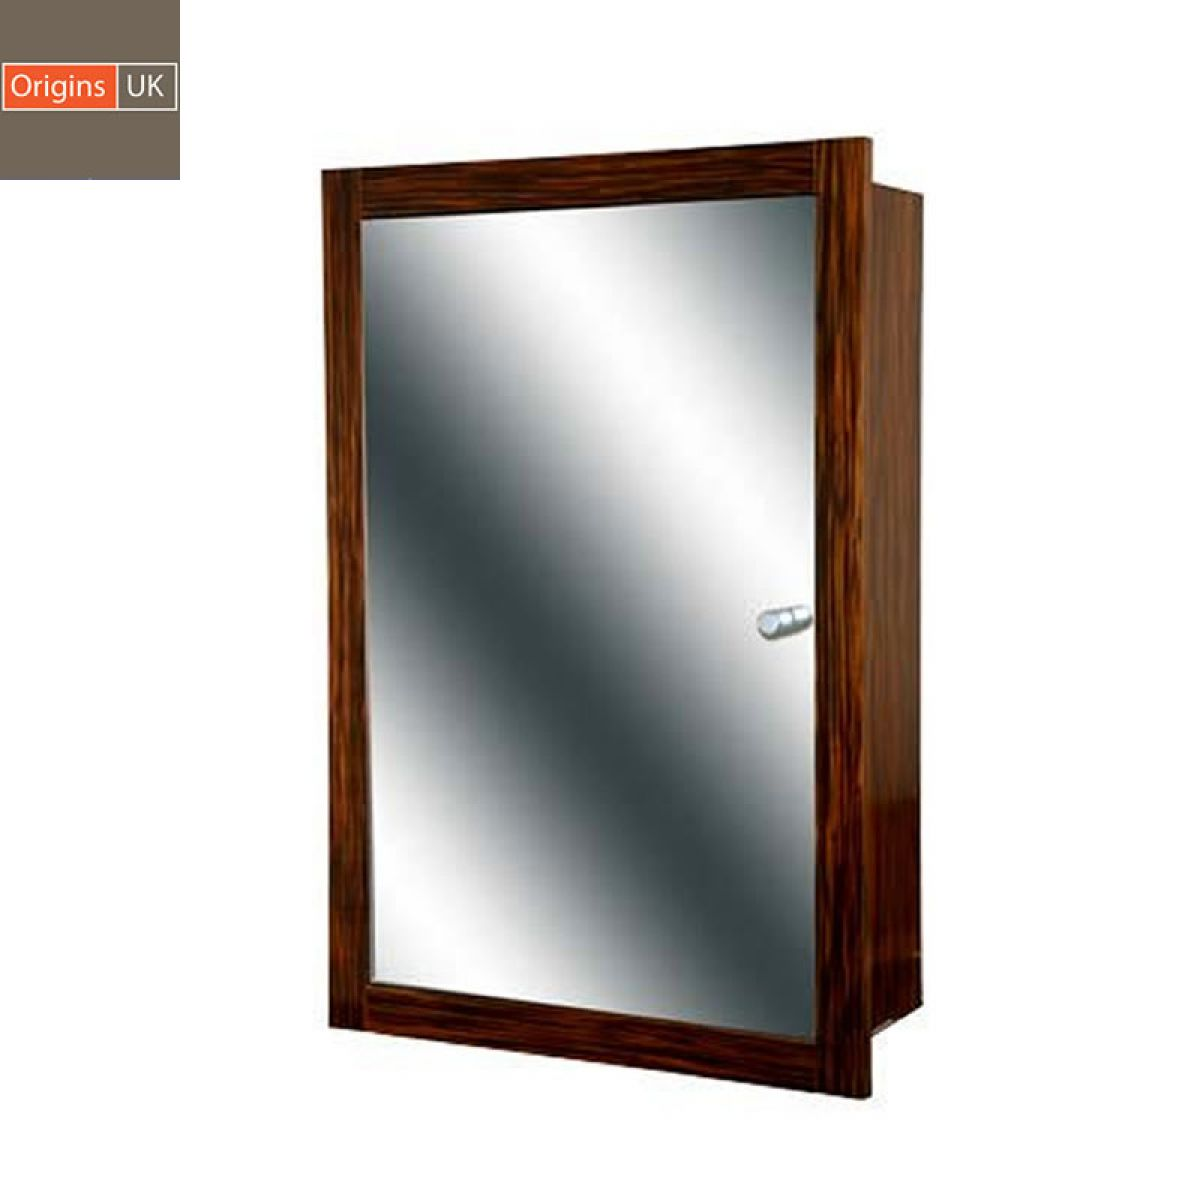 recessed mirrored bathroom cabinets origins single door recessed mirror cabinet uk bathrooms 20108